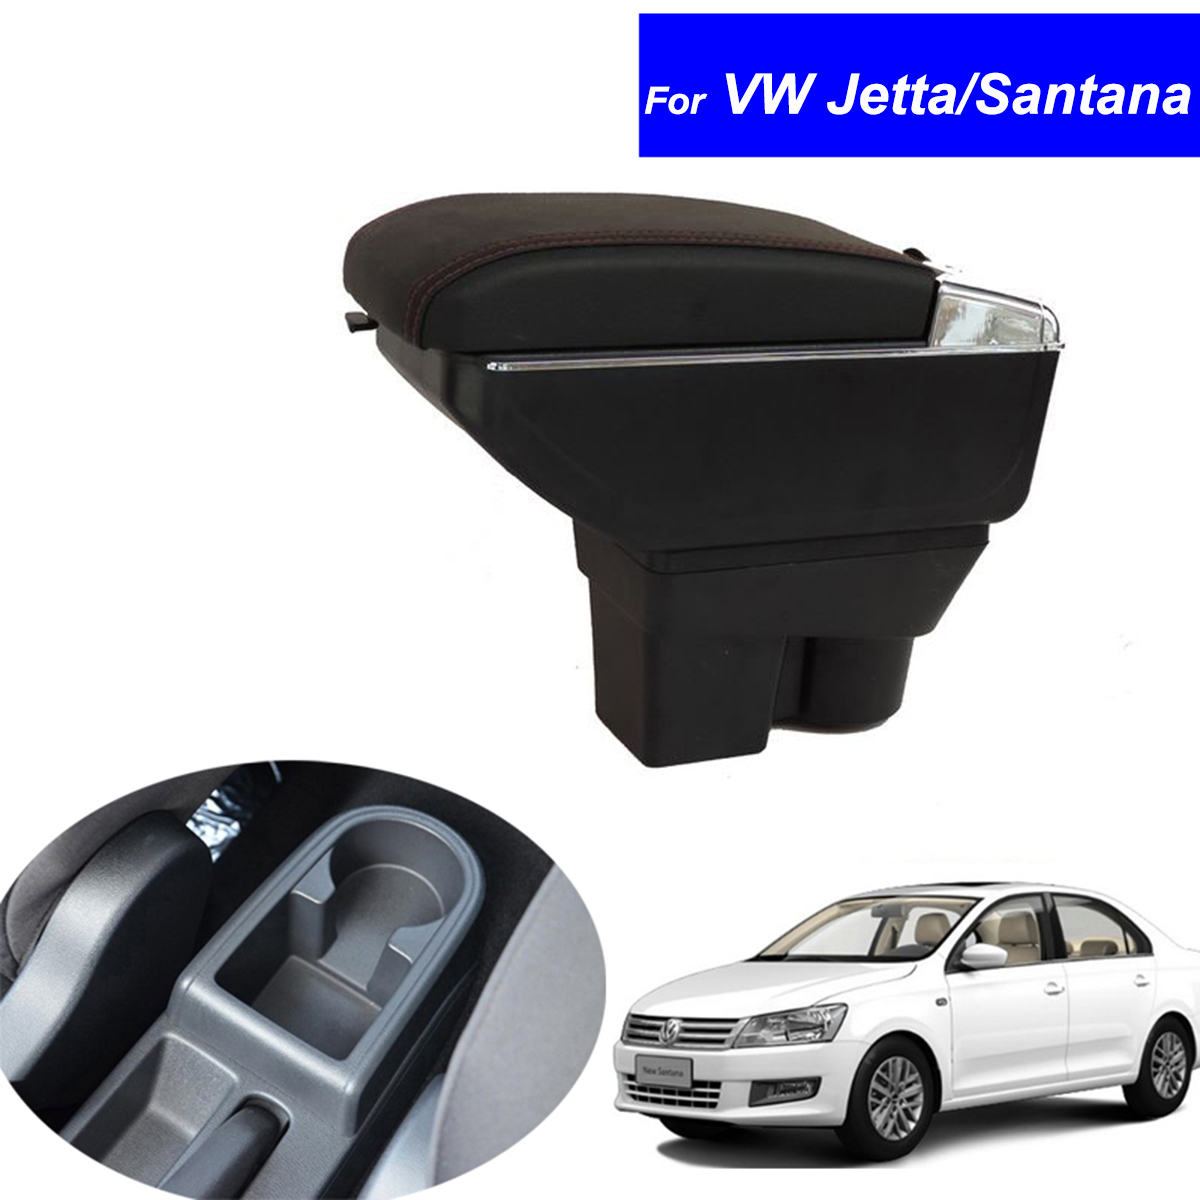 Leather Car Center Console Armrest Box for Volkswagen VW Santana / Jetta 2013 2014 2015 2016 Armrests with USB Free Shipping for skoda octavia 2009 2010 2011 2012 2013 2014 2015 2016 armrest with usb leather car center console armrests storage box